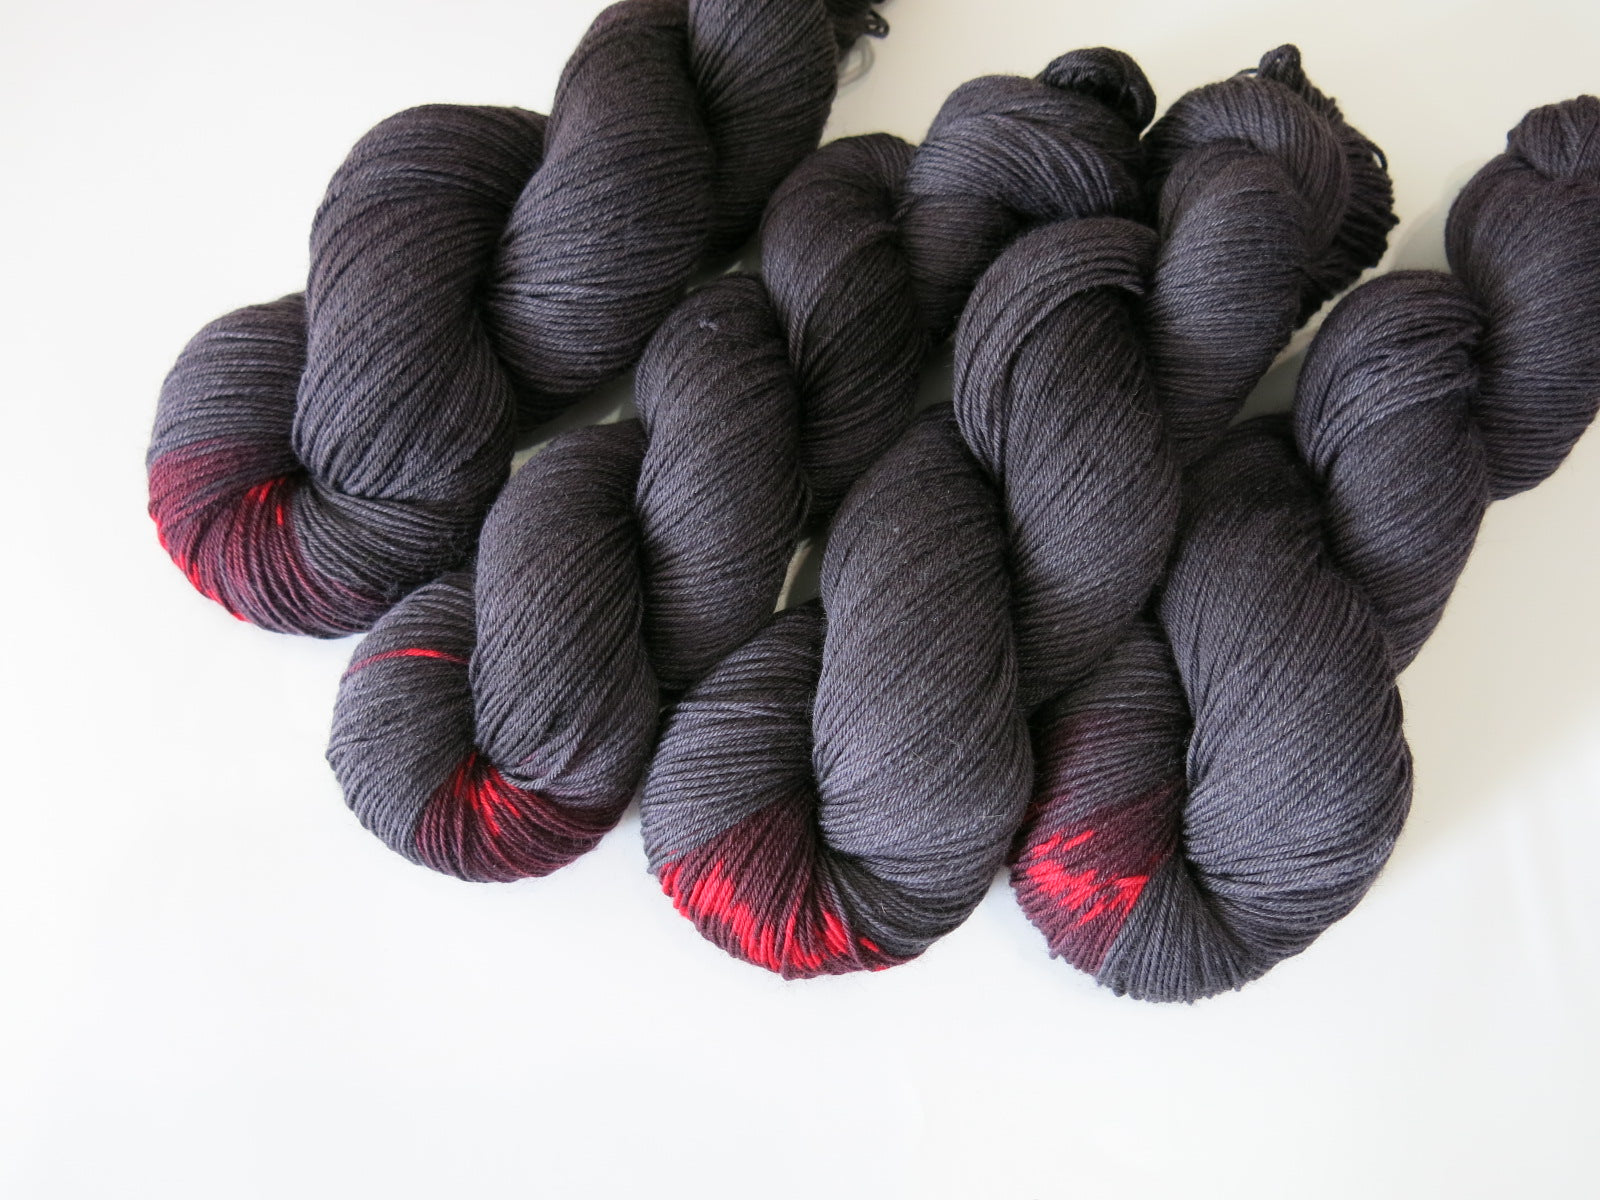 black yarn skein with a pop of red colour inspired by black widow spiders